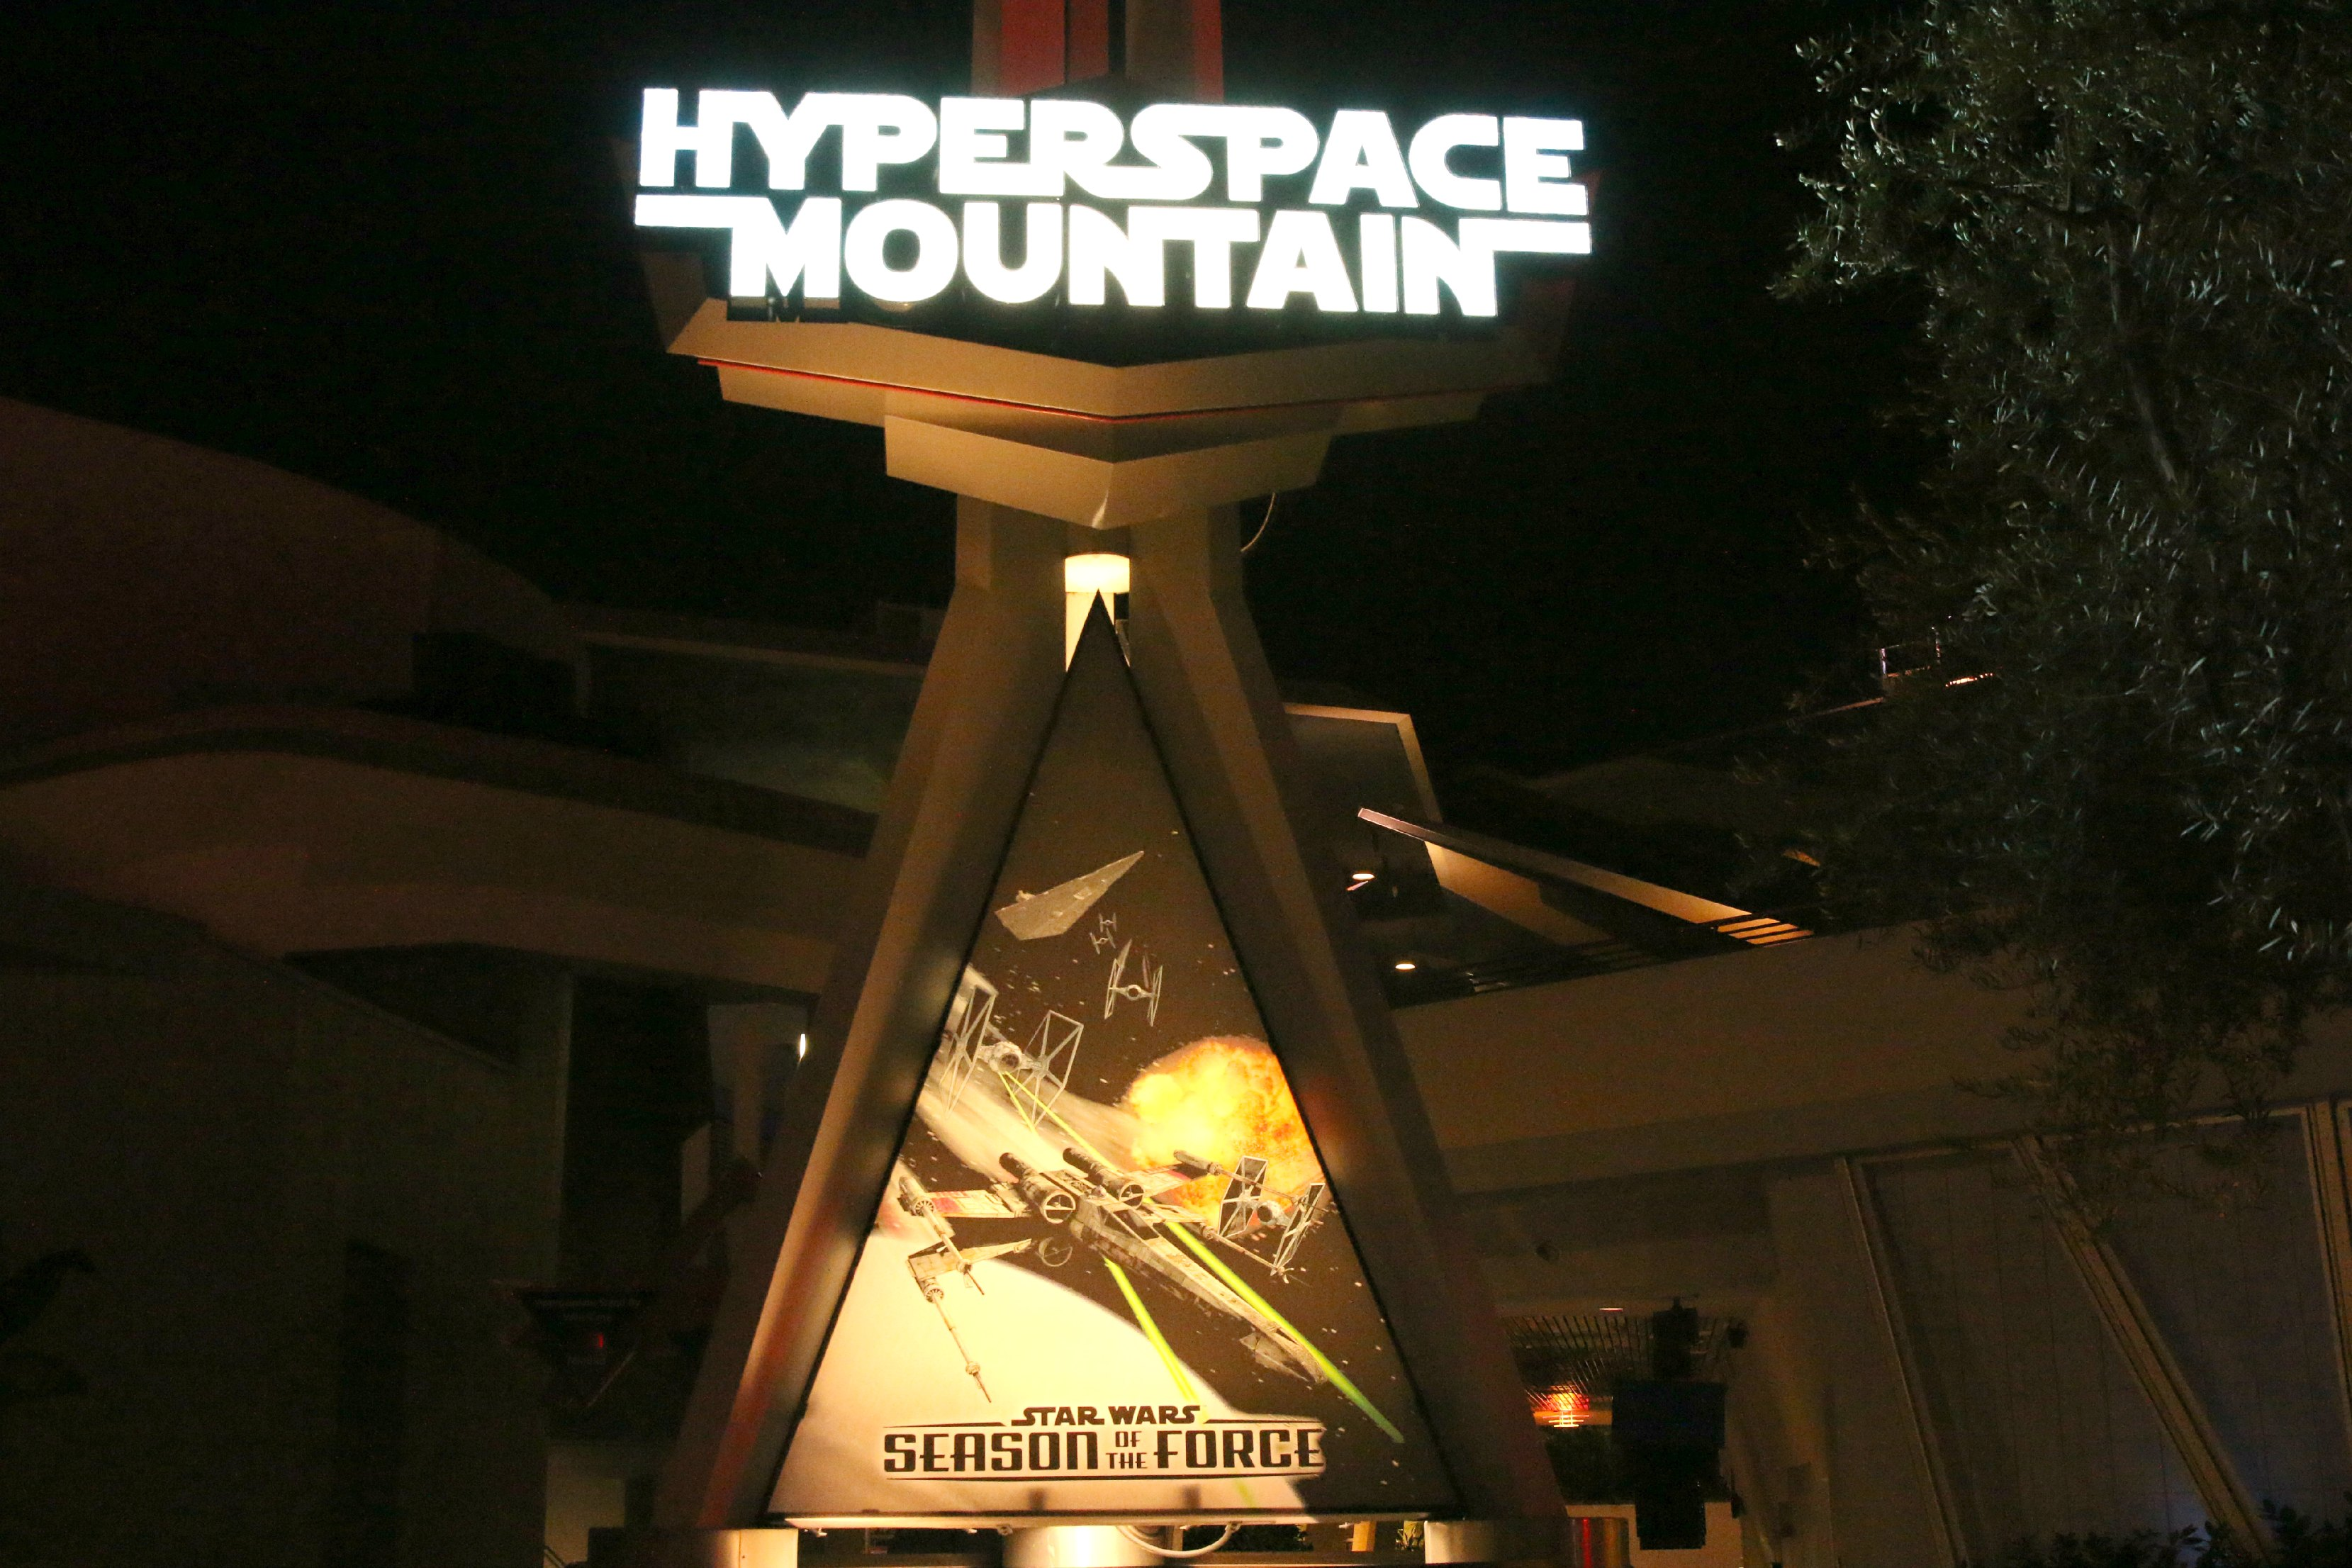 hyperspacemountain review